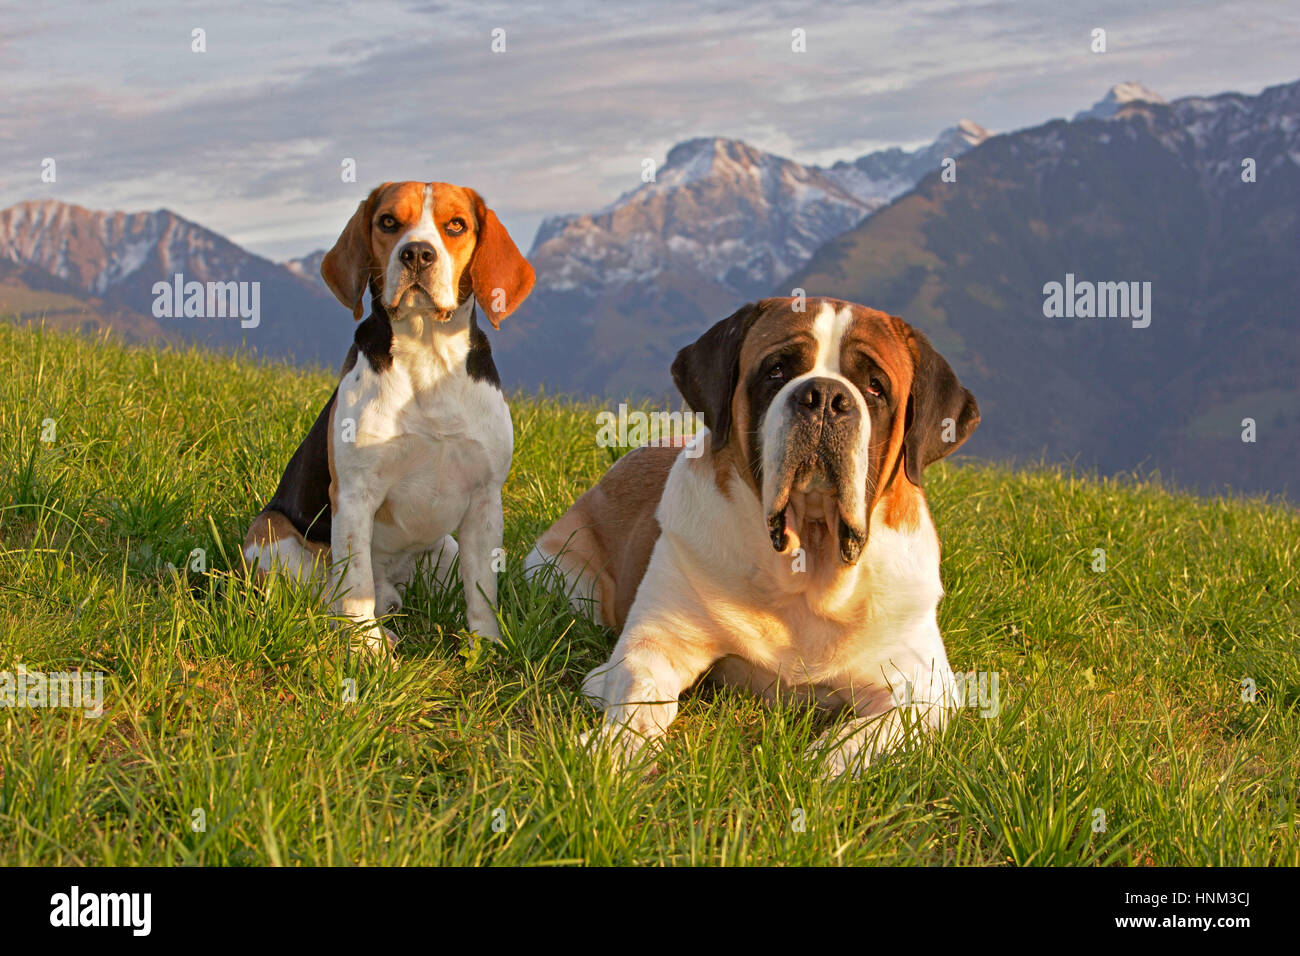 Bernhardiner und Beagle Ruede zusammen auf Bergwiese|Beagle and Saint Bernard Dog sitting together in meadow - Stock Image